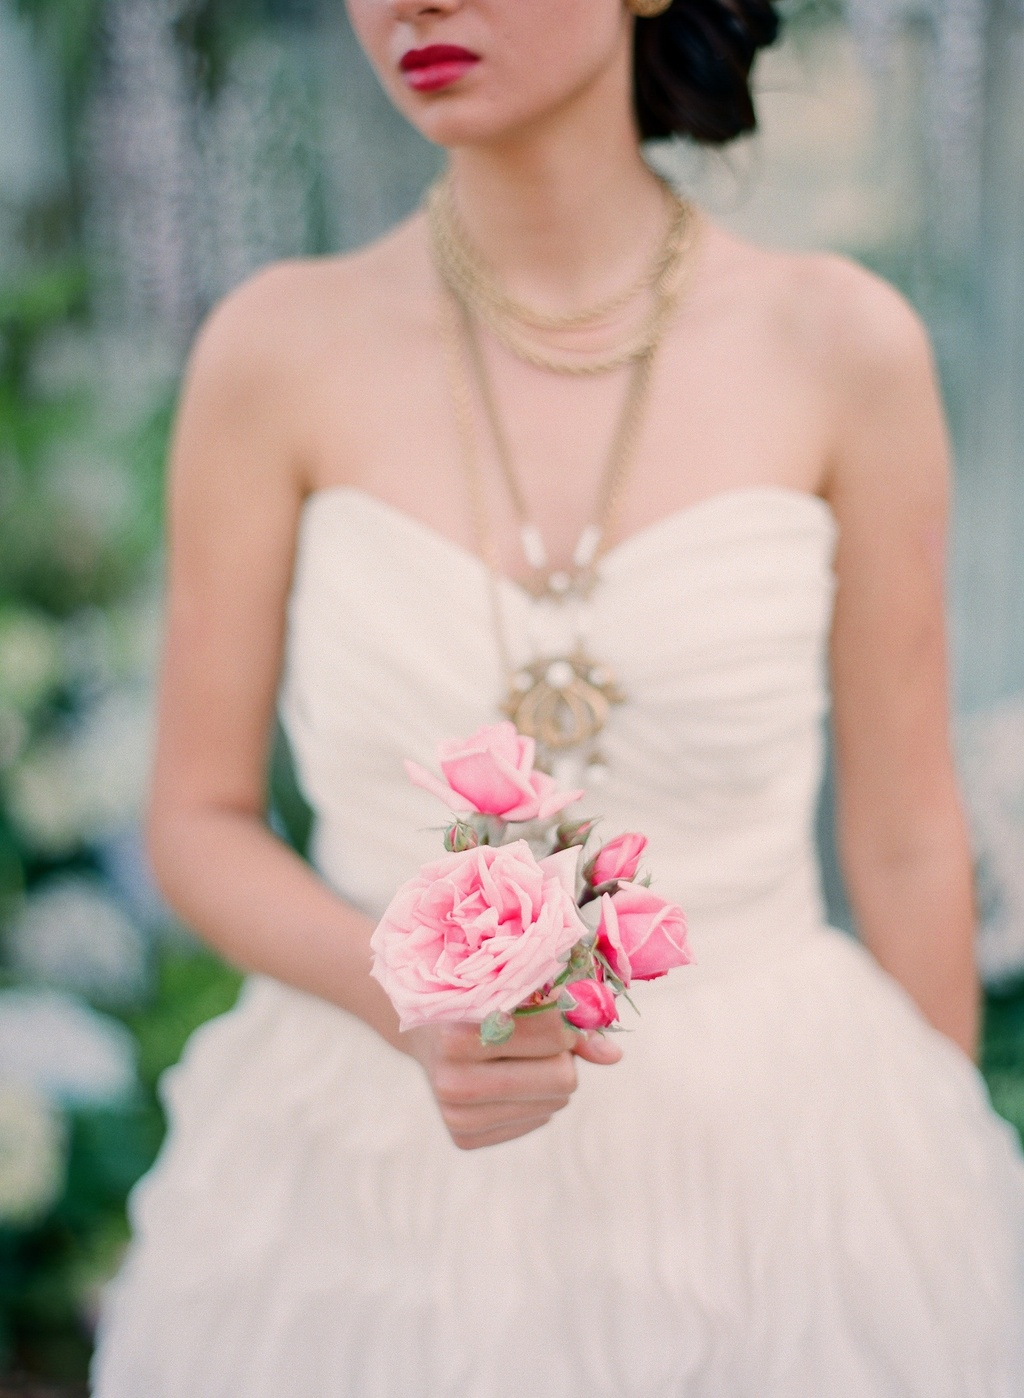 Wedding-tips-for-brides-get-a-sample-bouquet-for-wedding-dress-fitting.full